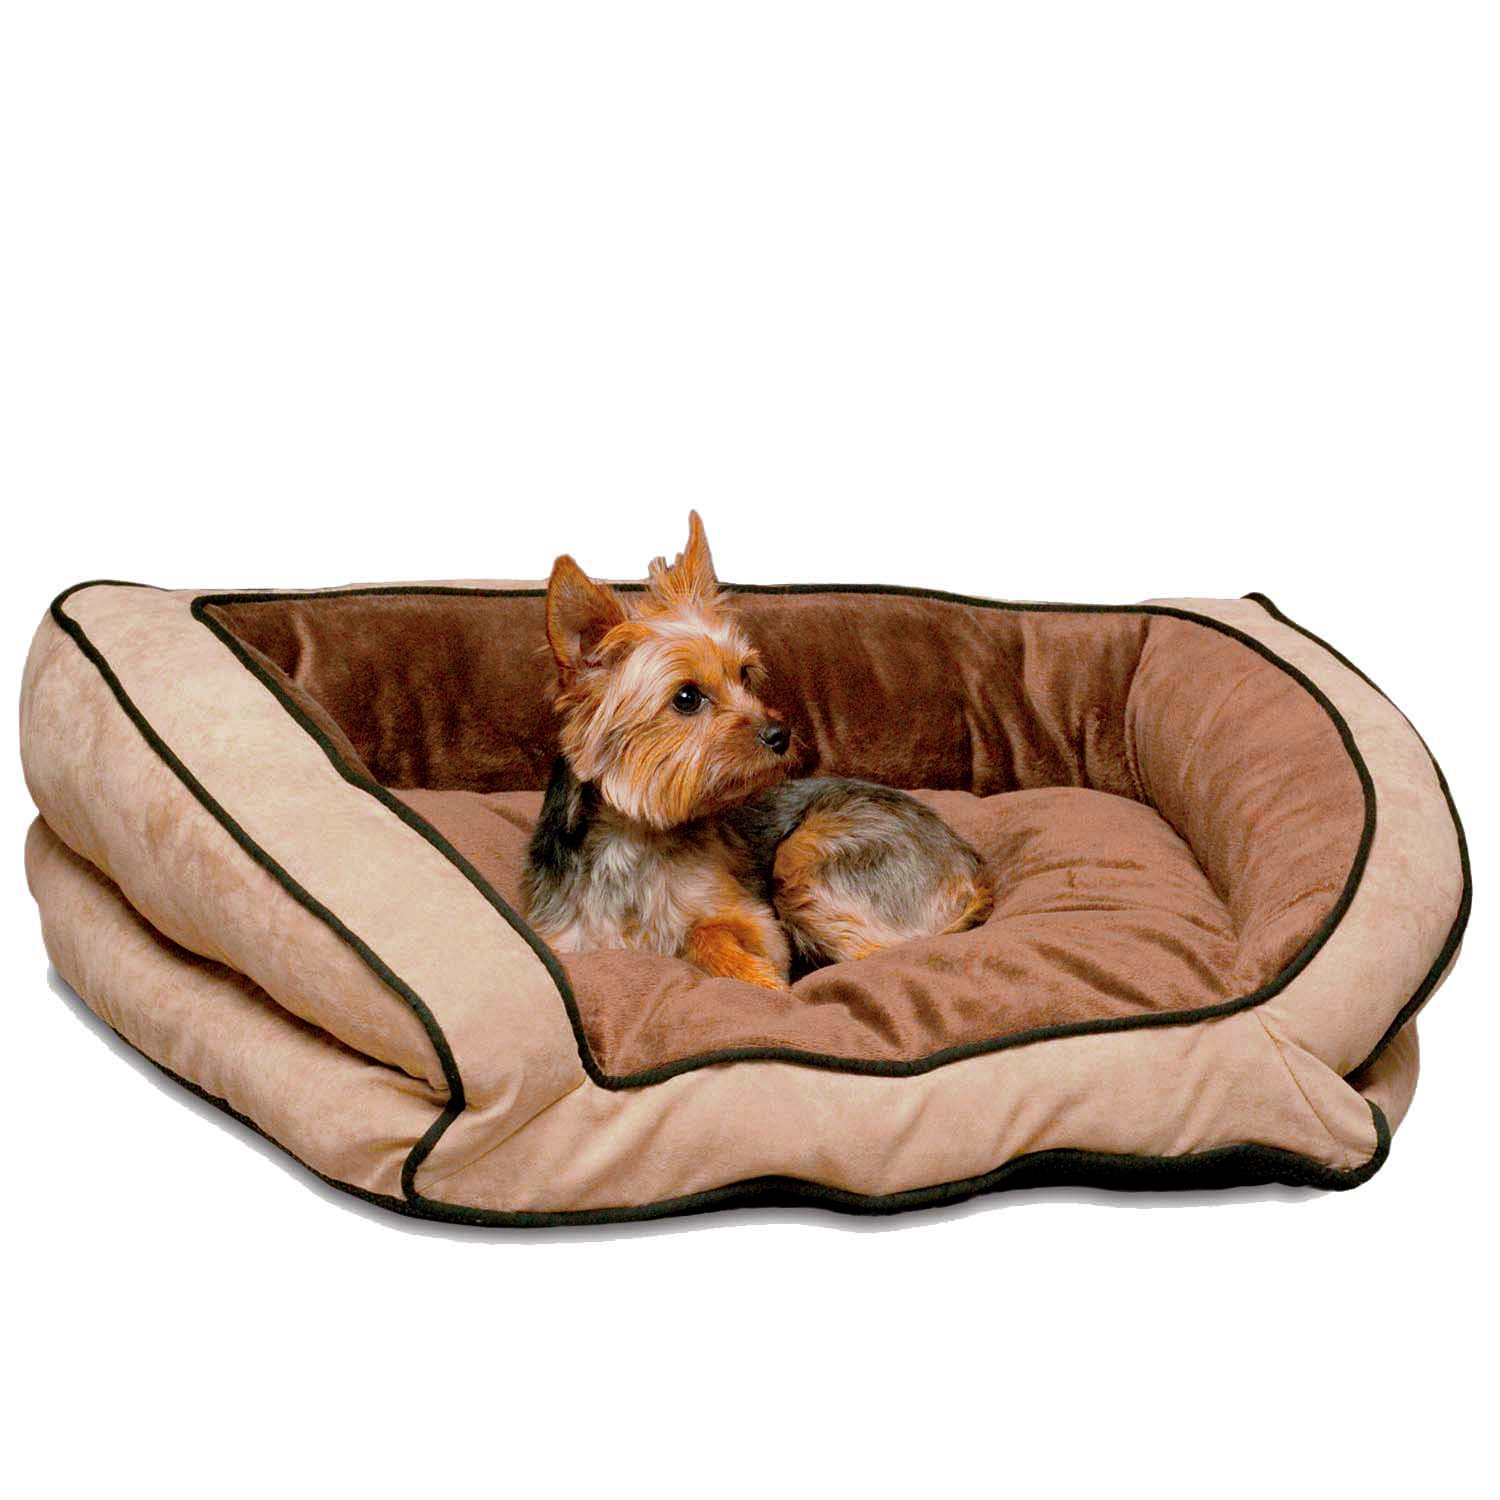 Small 21-Inch by 30-Inch K&H Manufacturing Bolster Couch Pet Bed, Small 21-Inch by 30-Inch, Mocha Tan